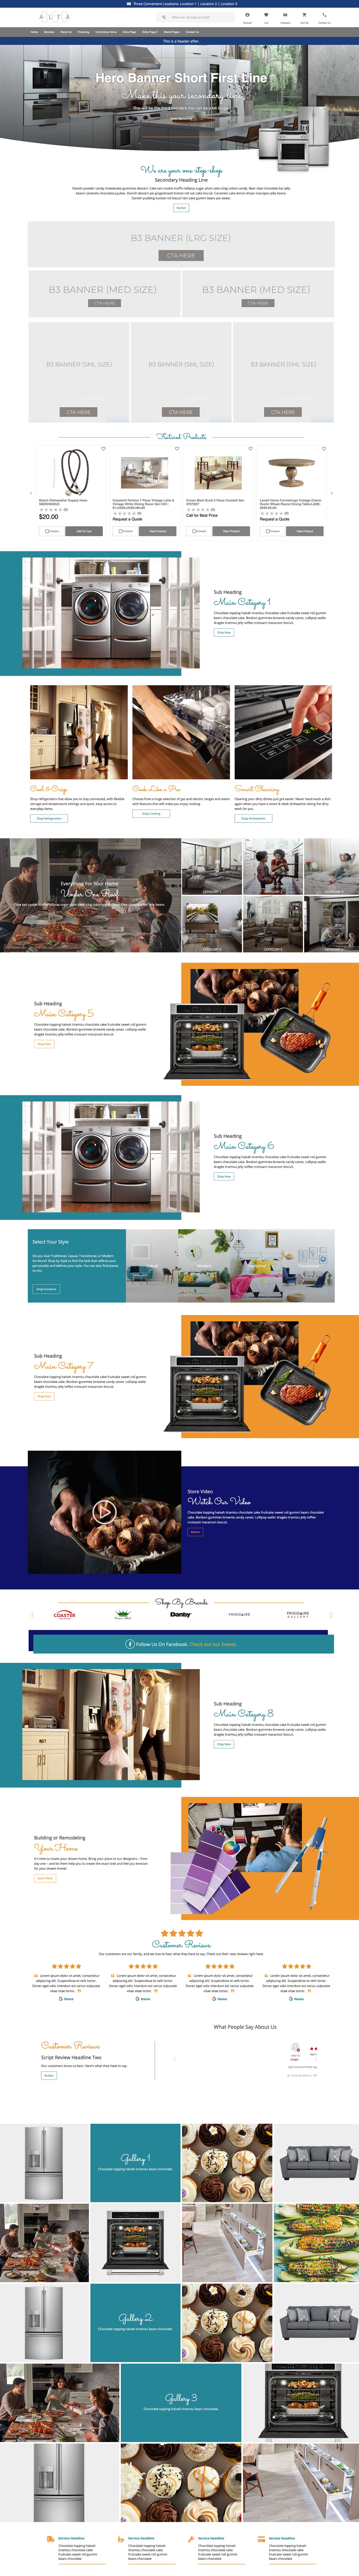 Website Themes - Commerce - Multiplicity